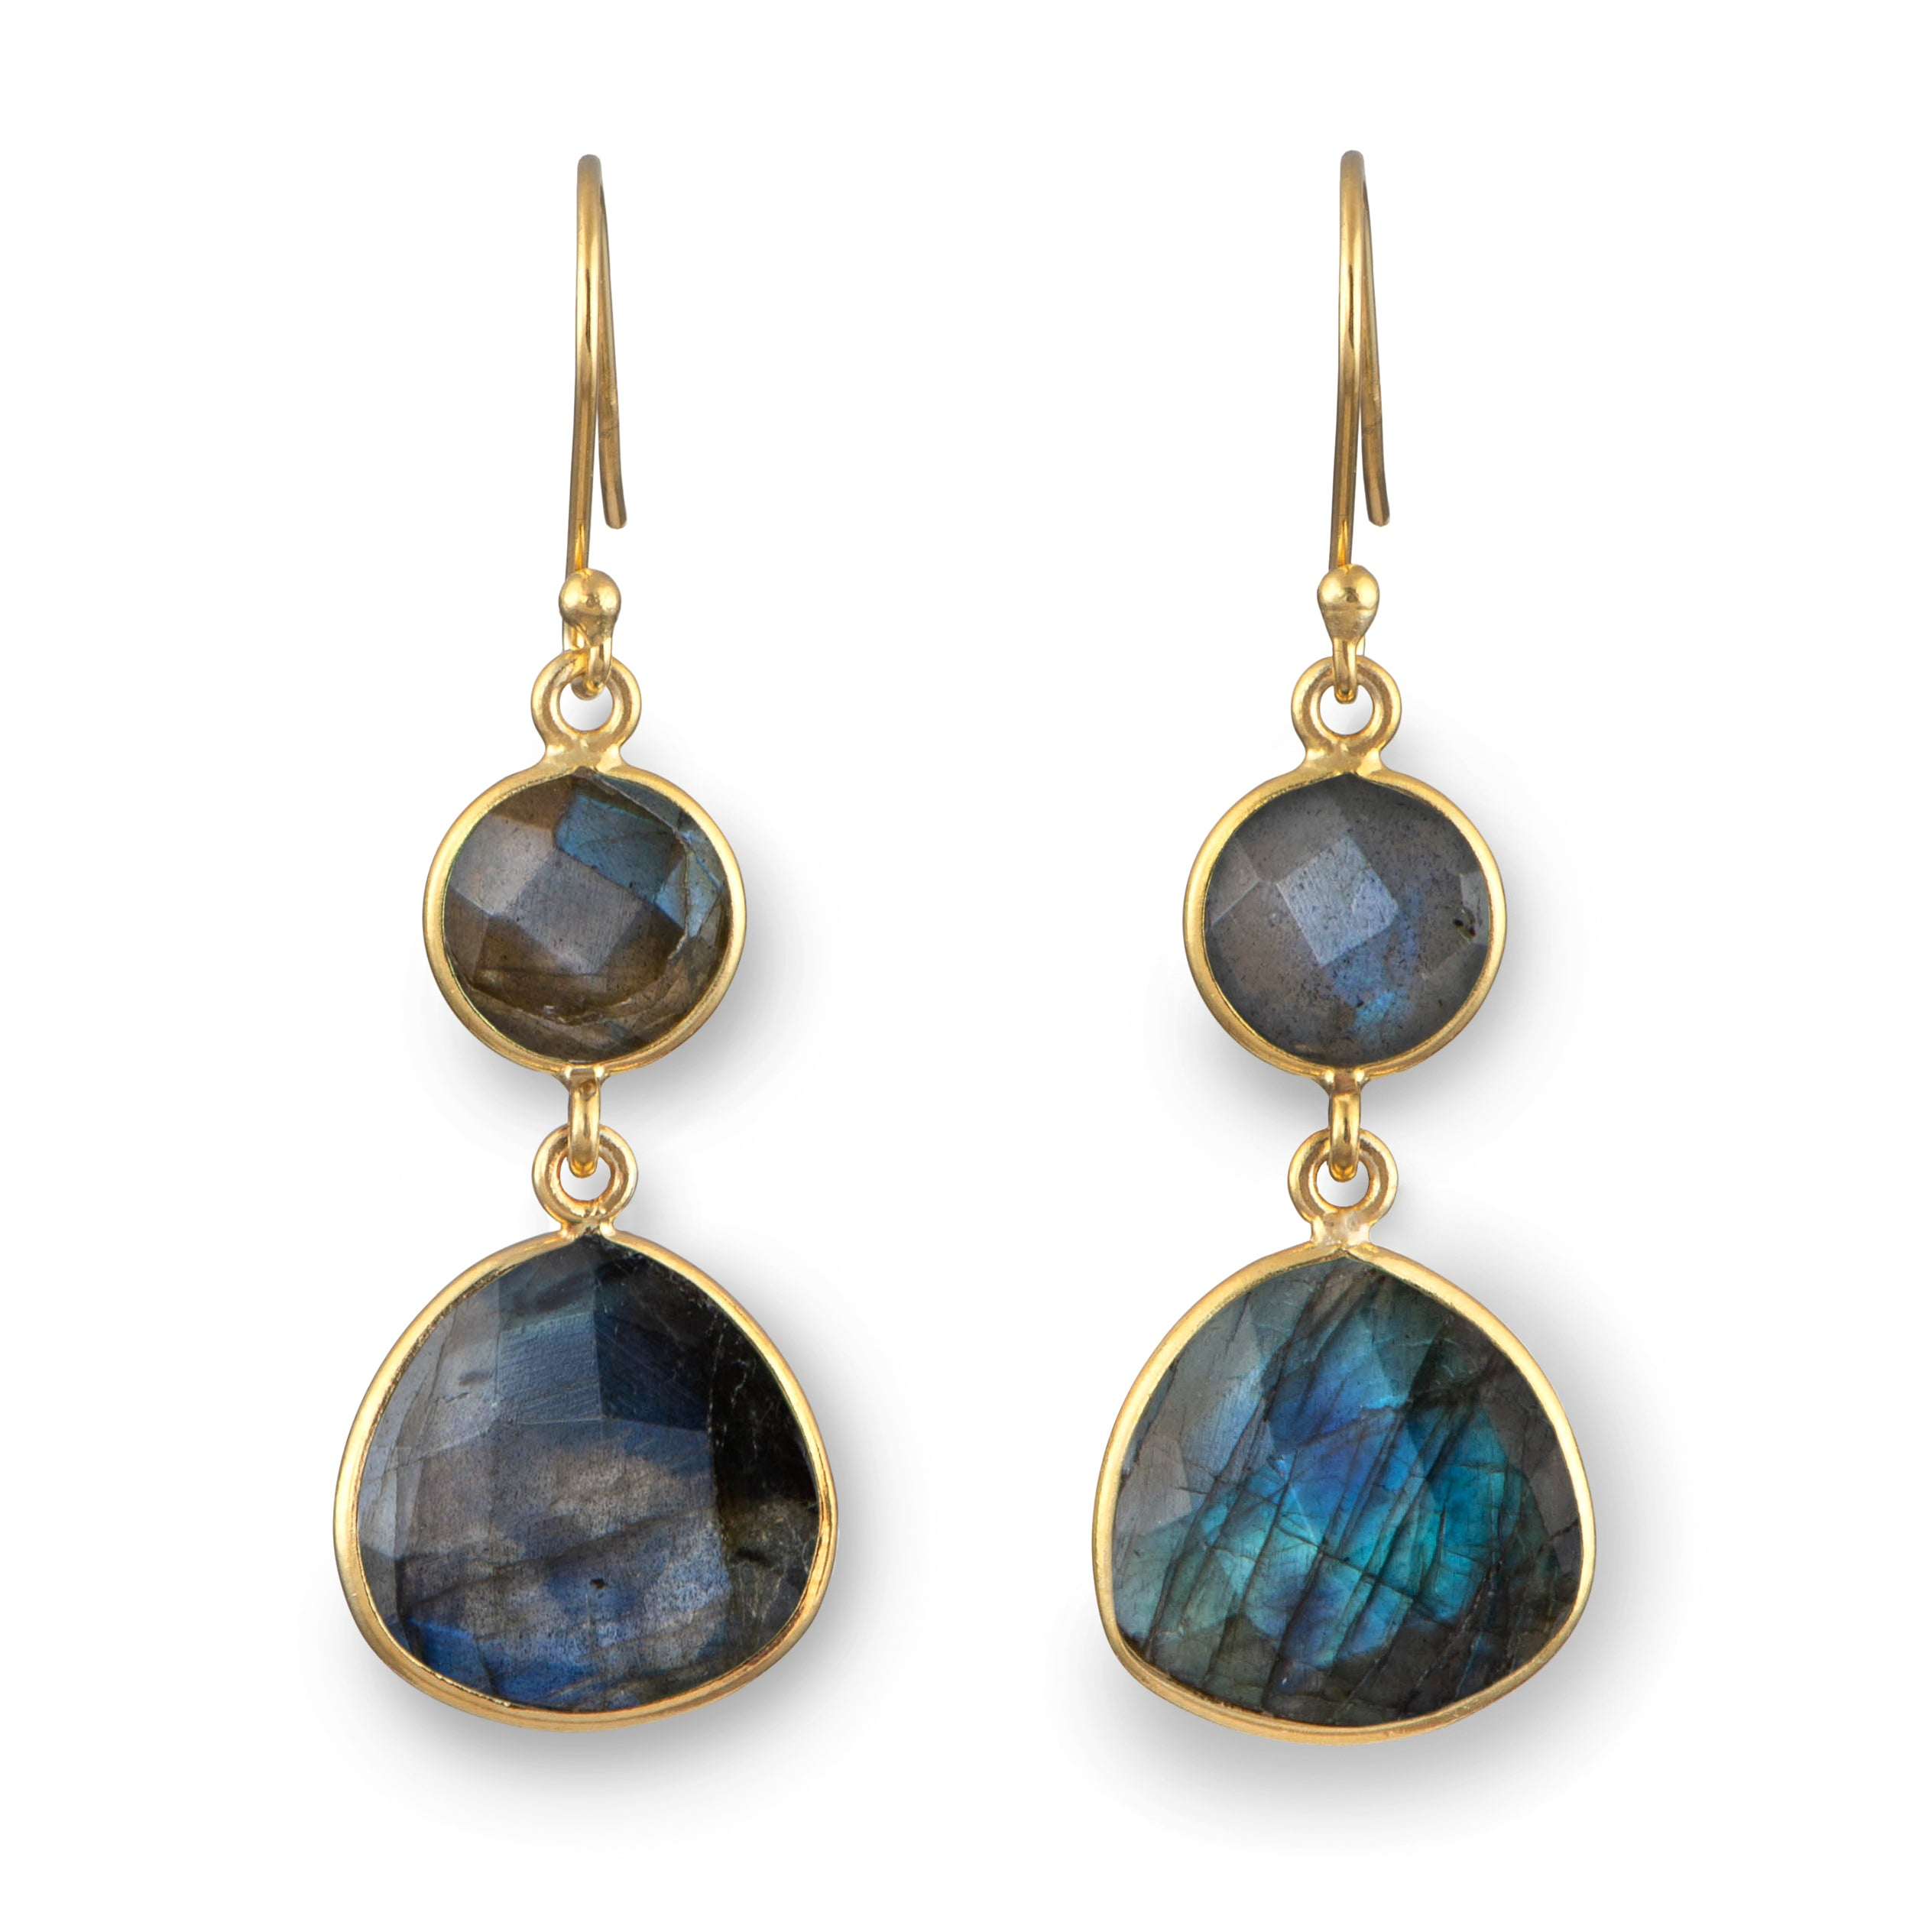 Gold Plated Semiprecious Stone Earrings - Triangular